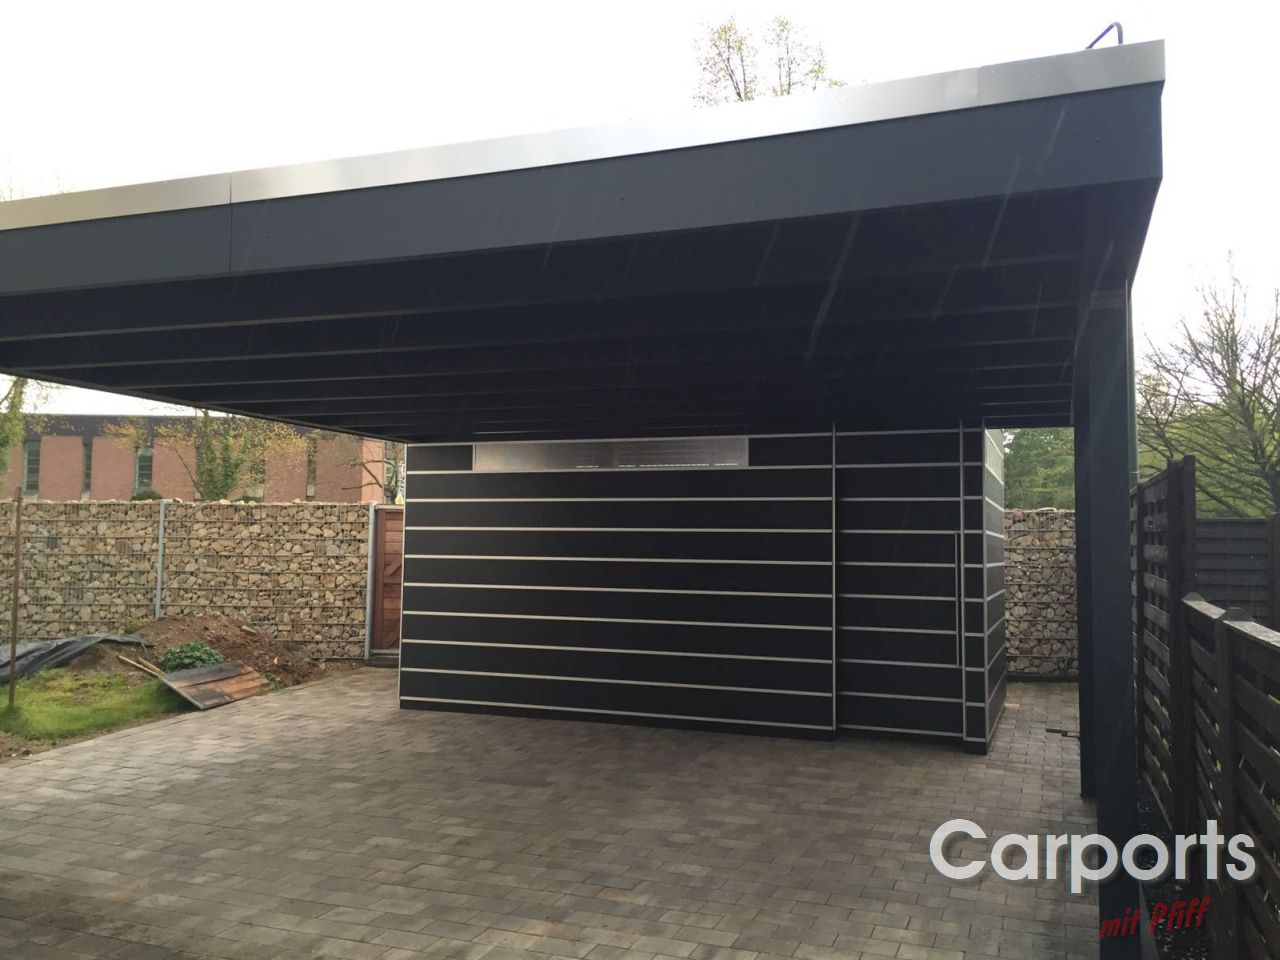 carports mit pfiff. Black Bedroom Furniture Sets. Home Design Ideas